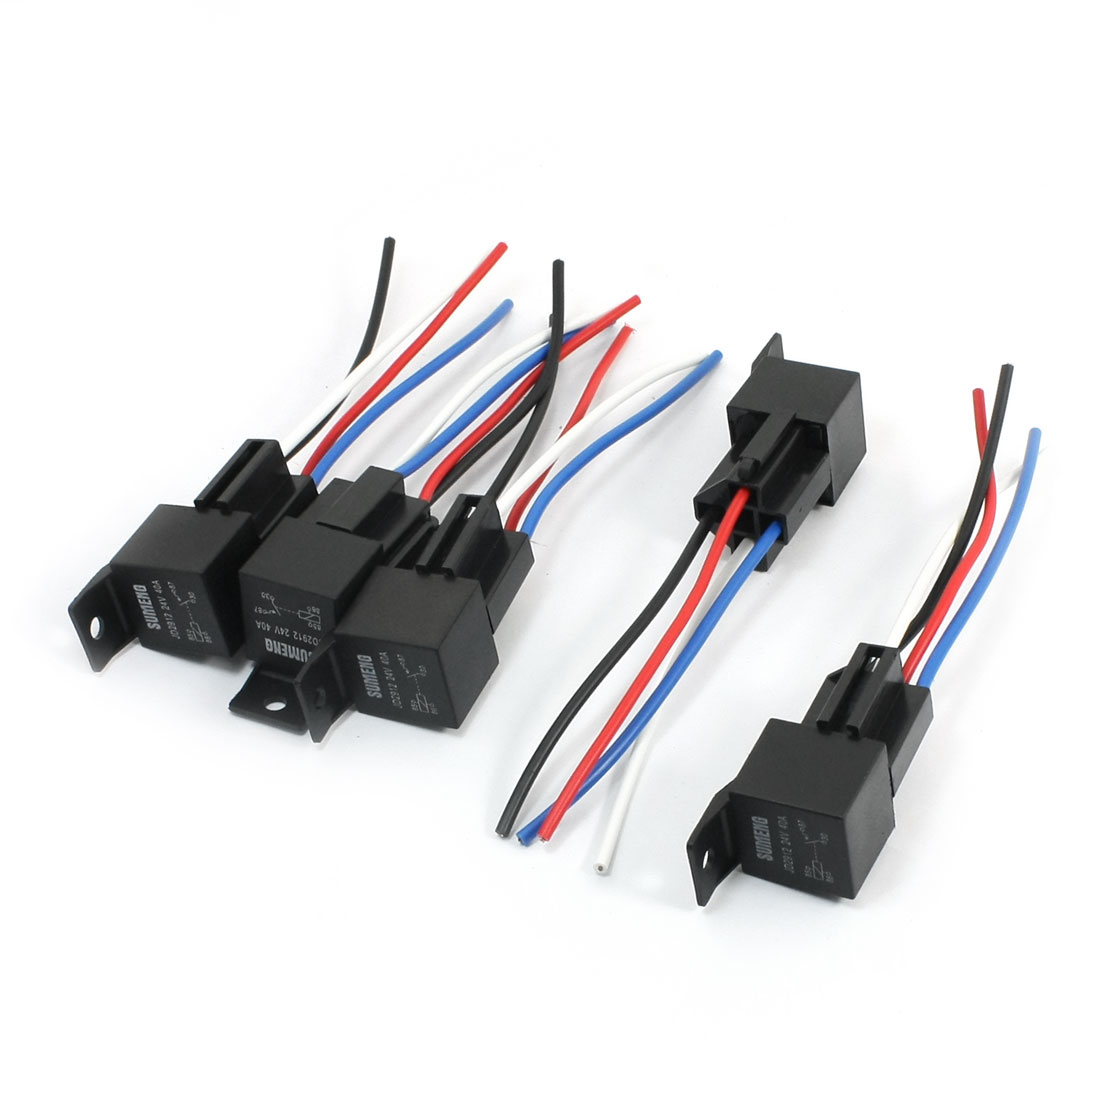 5Pcs JD2912 DC24V Coil Voltage 4 Wired Plastic Adapter Socket Holder 4-Pin SPST 1NO Normal Open Car Auto Relay 40A